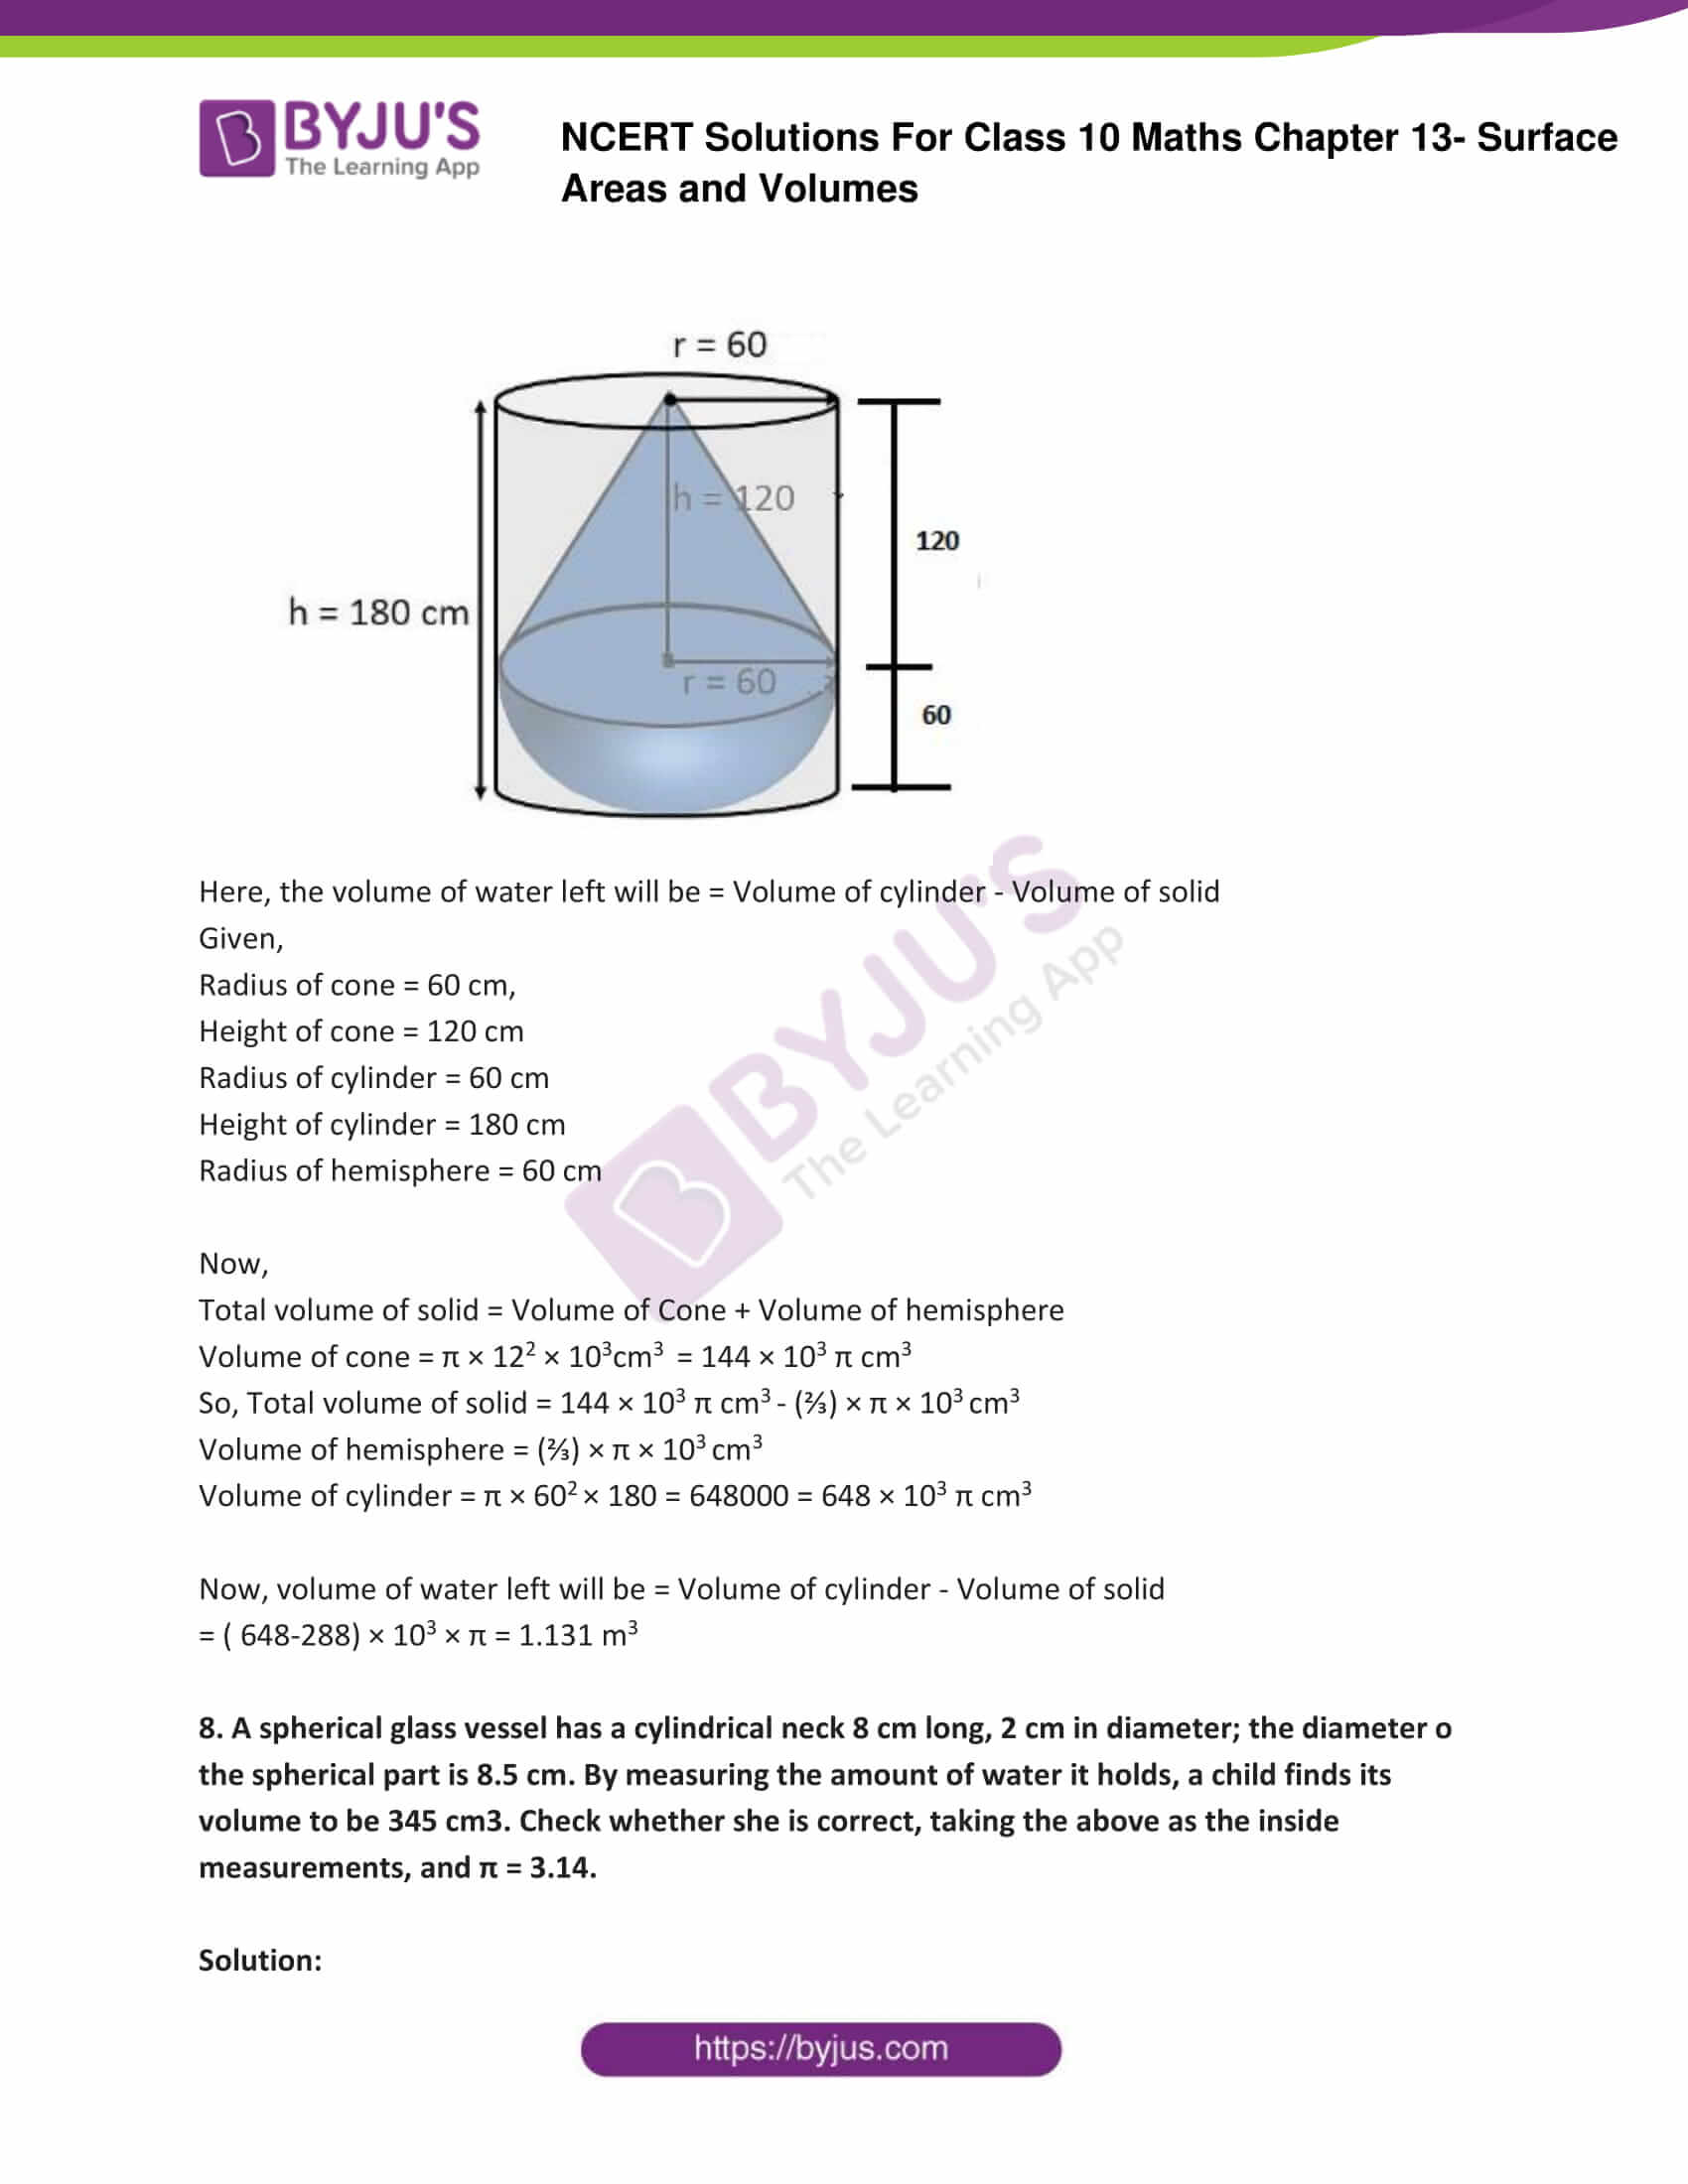 NCERT Solutions Class 10 Maths Chapter 13 Surface Areas and Volumes Part 13